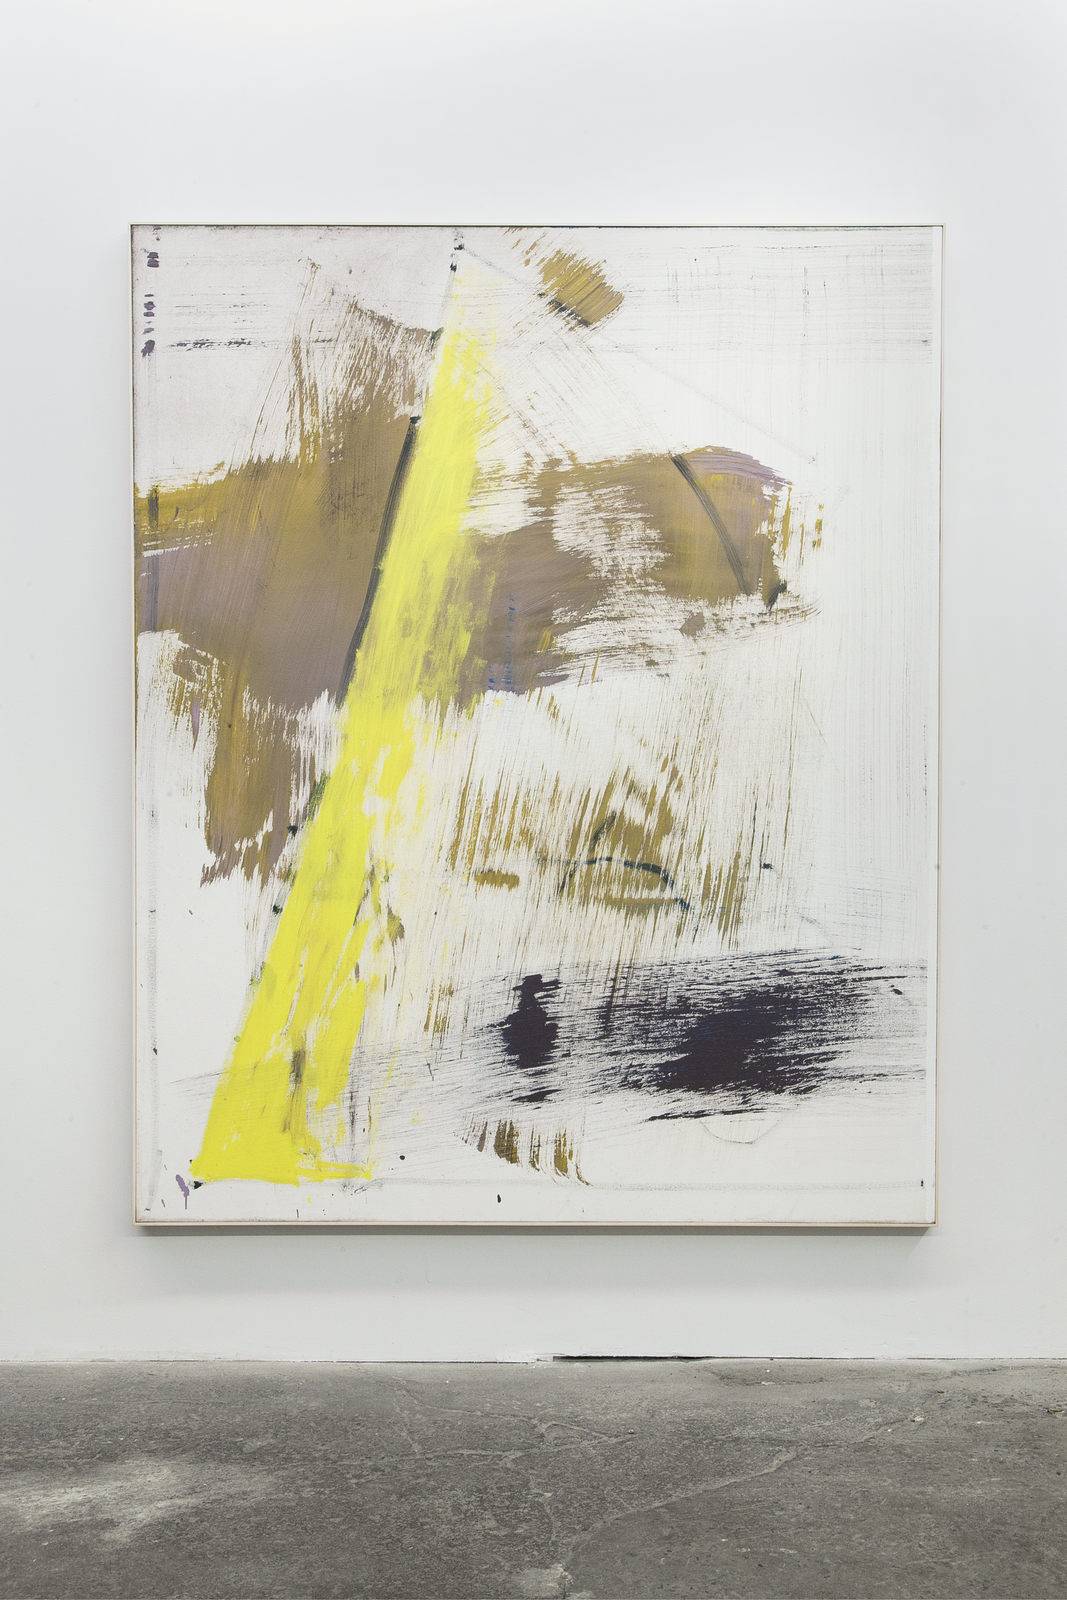 03_Jean-François Lauda. Untitled 35. Acrylic on canvas 193 x 152.5 cm. 2016